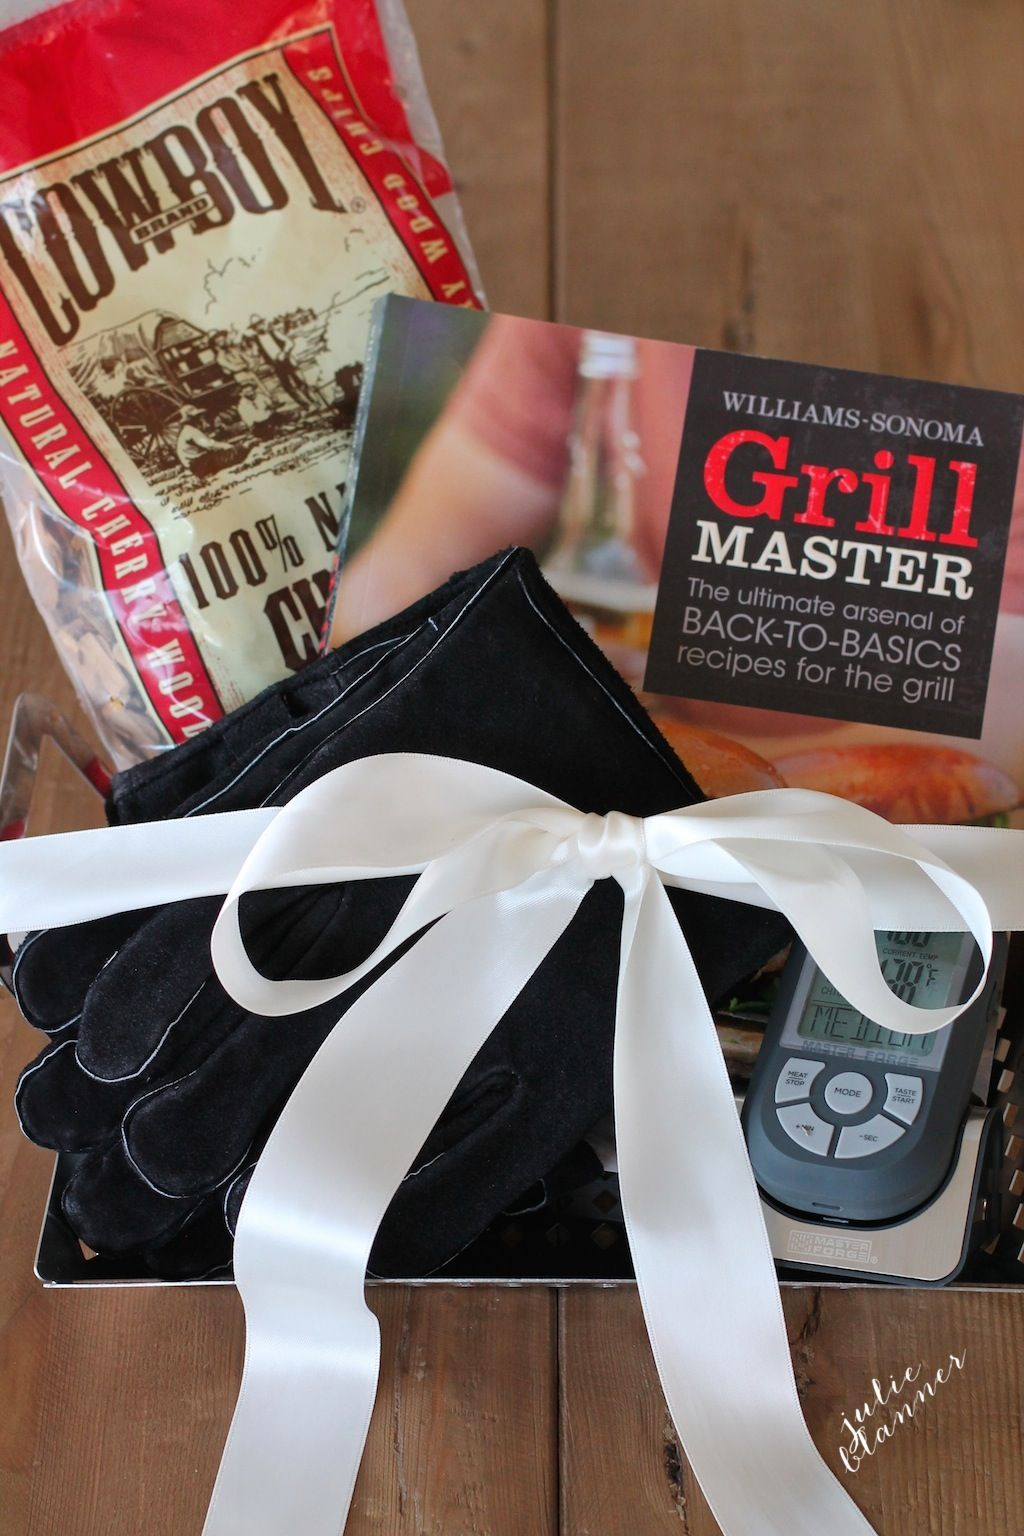 Gifts in a basket tips for gift giving grill